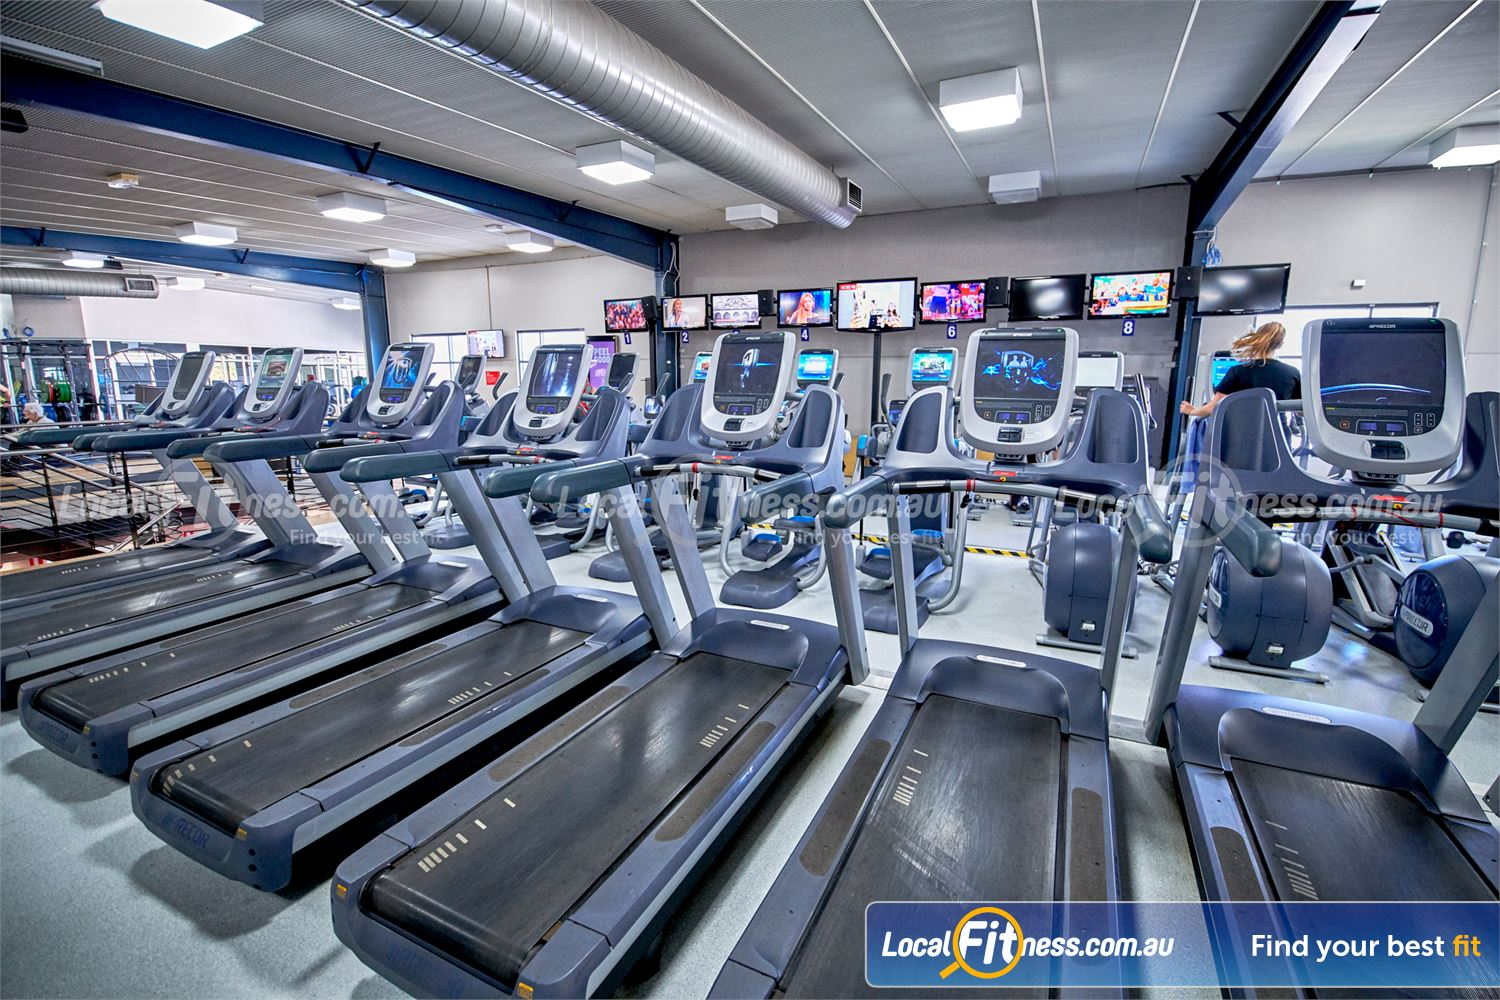 Fitness First Bayside Highett Our Bayside gym includes a fully equipped cardio area.